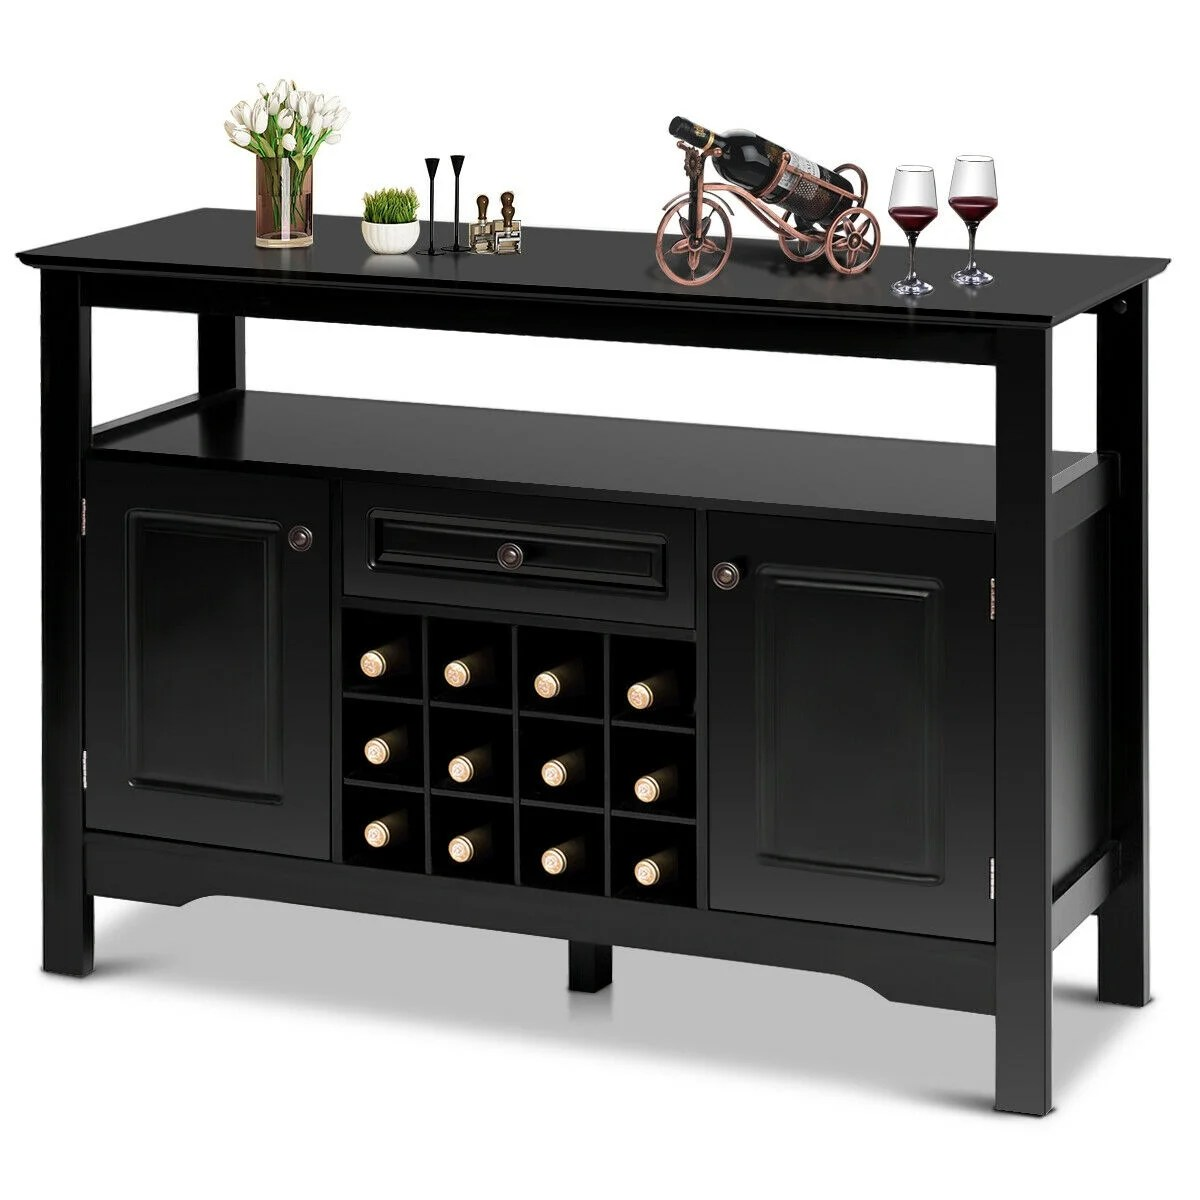 Buffet Sideboard With Wine Rack Gymax Storage Buffet Sever Cabinet Sideboard Table Wood Wine Rack